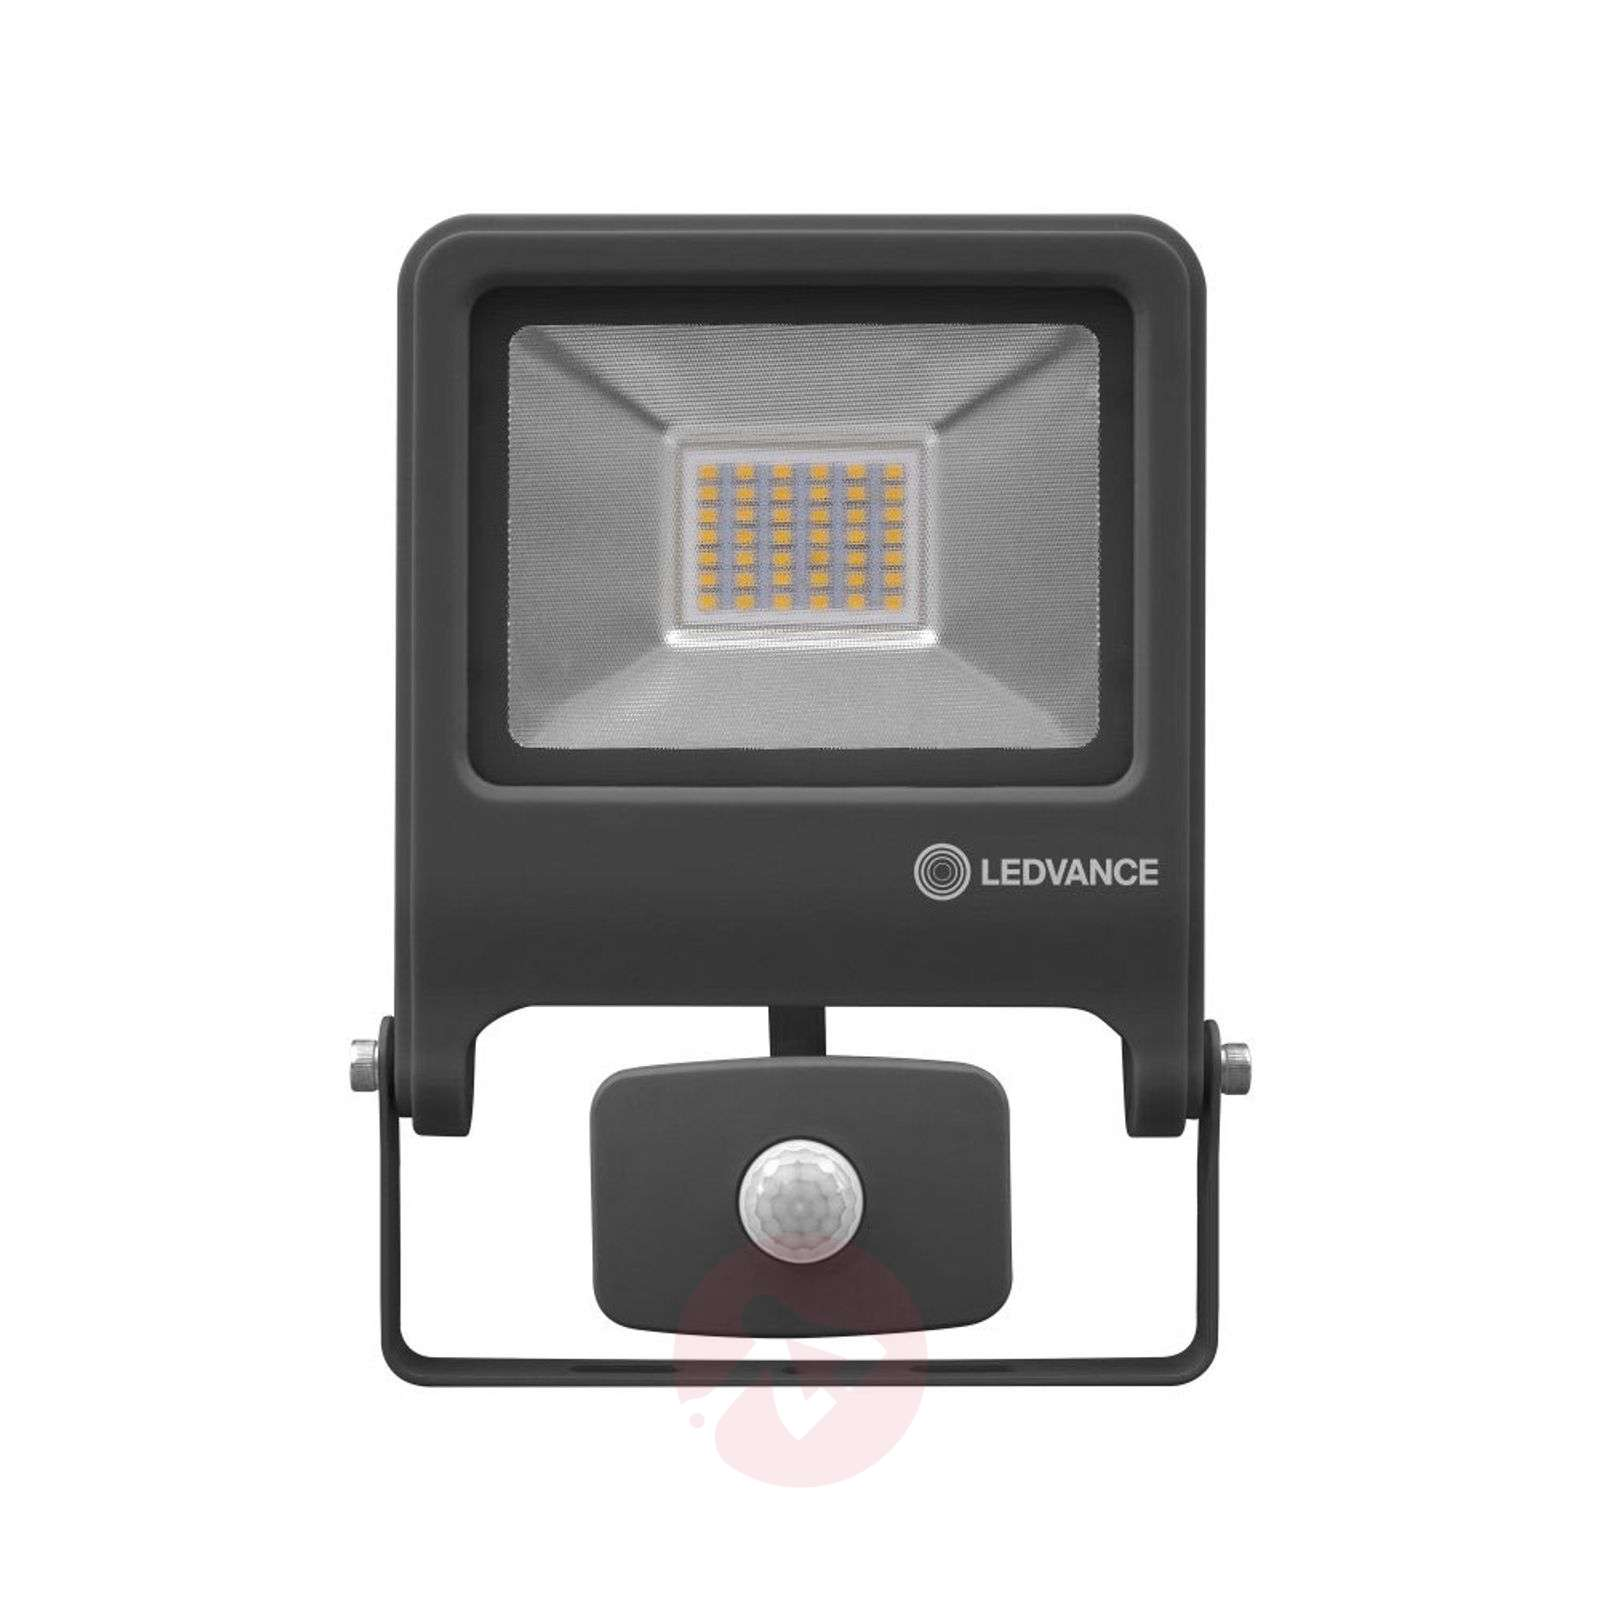 LEDVANCE Endura Floodlight sensor LED-spotti 30W-6106045-01